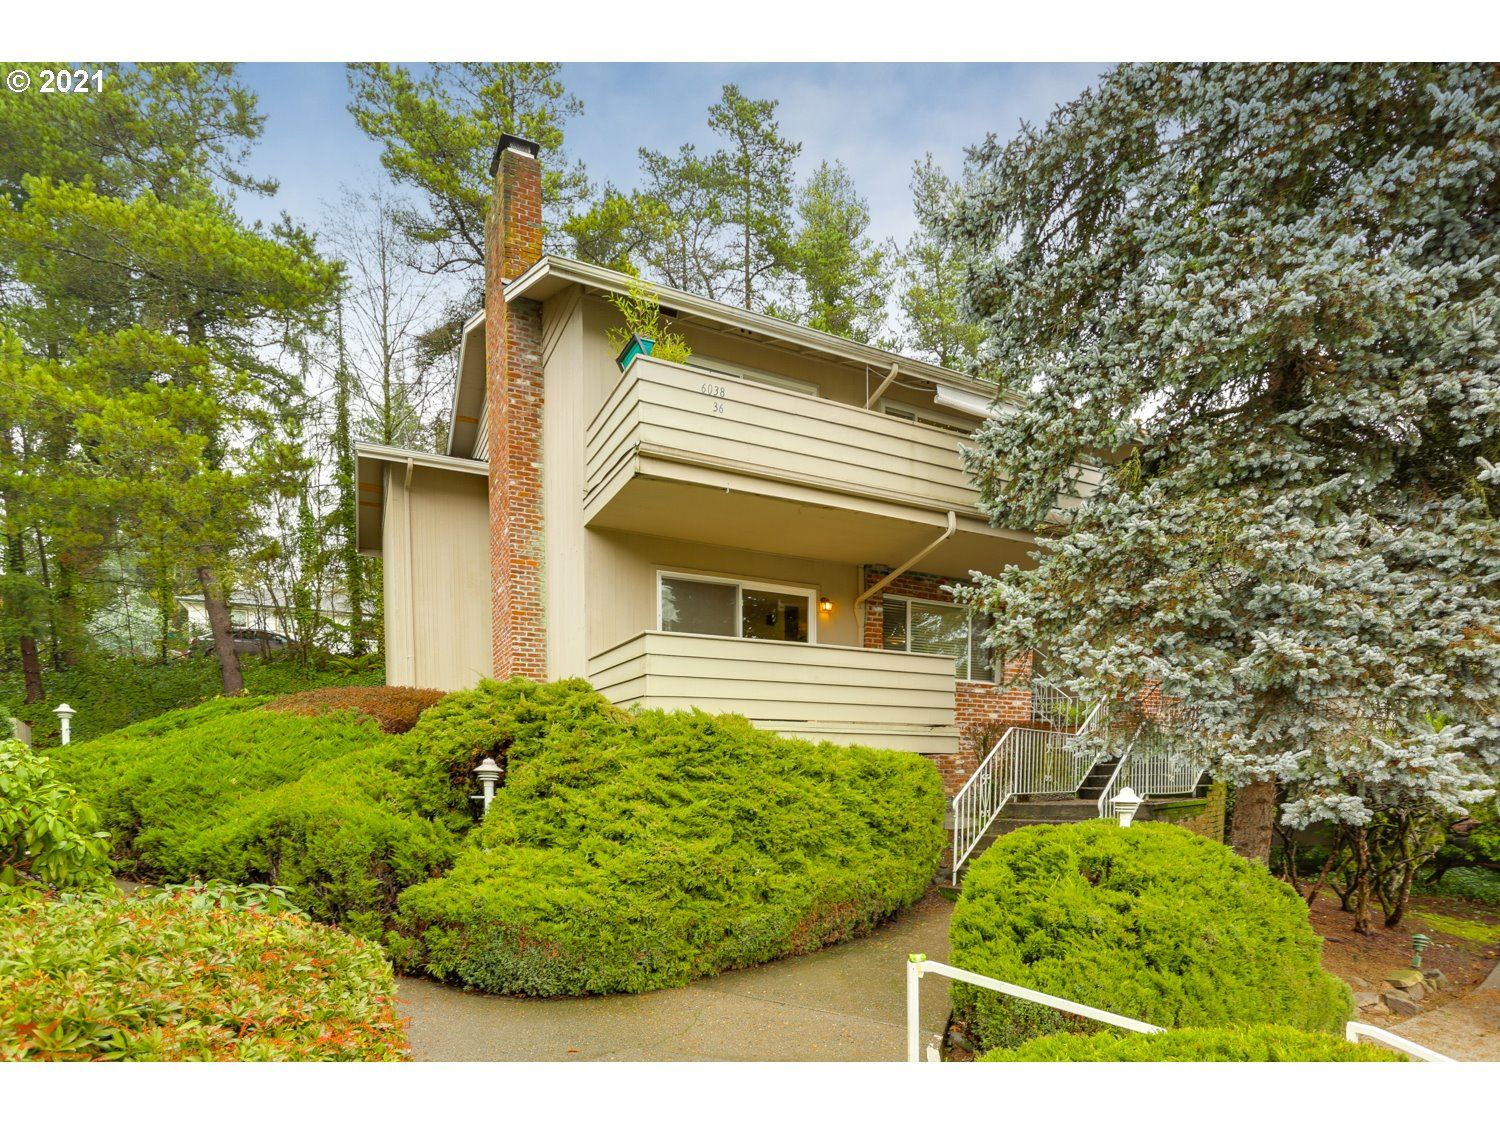 6036 SW 25TH AVE, Portland, OR 97239 - MLS#: 21686595